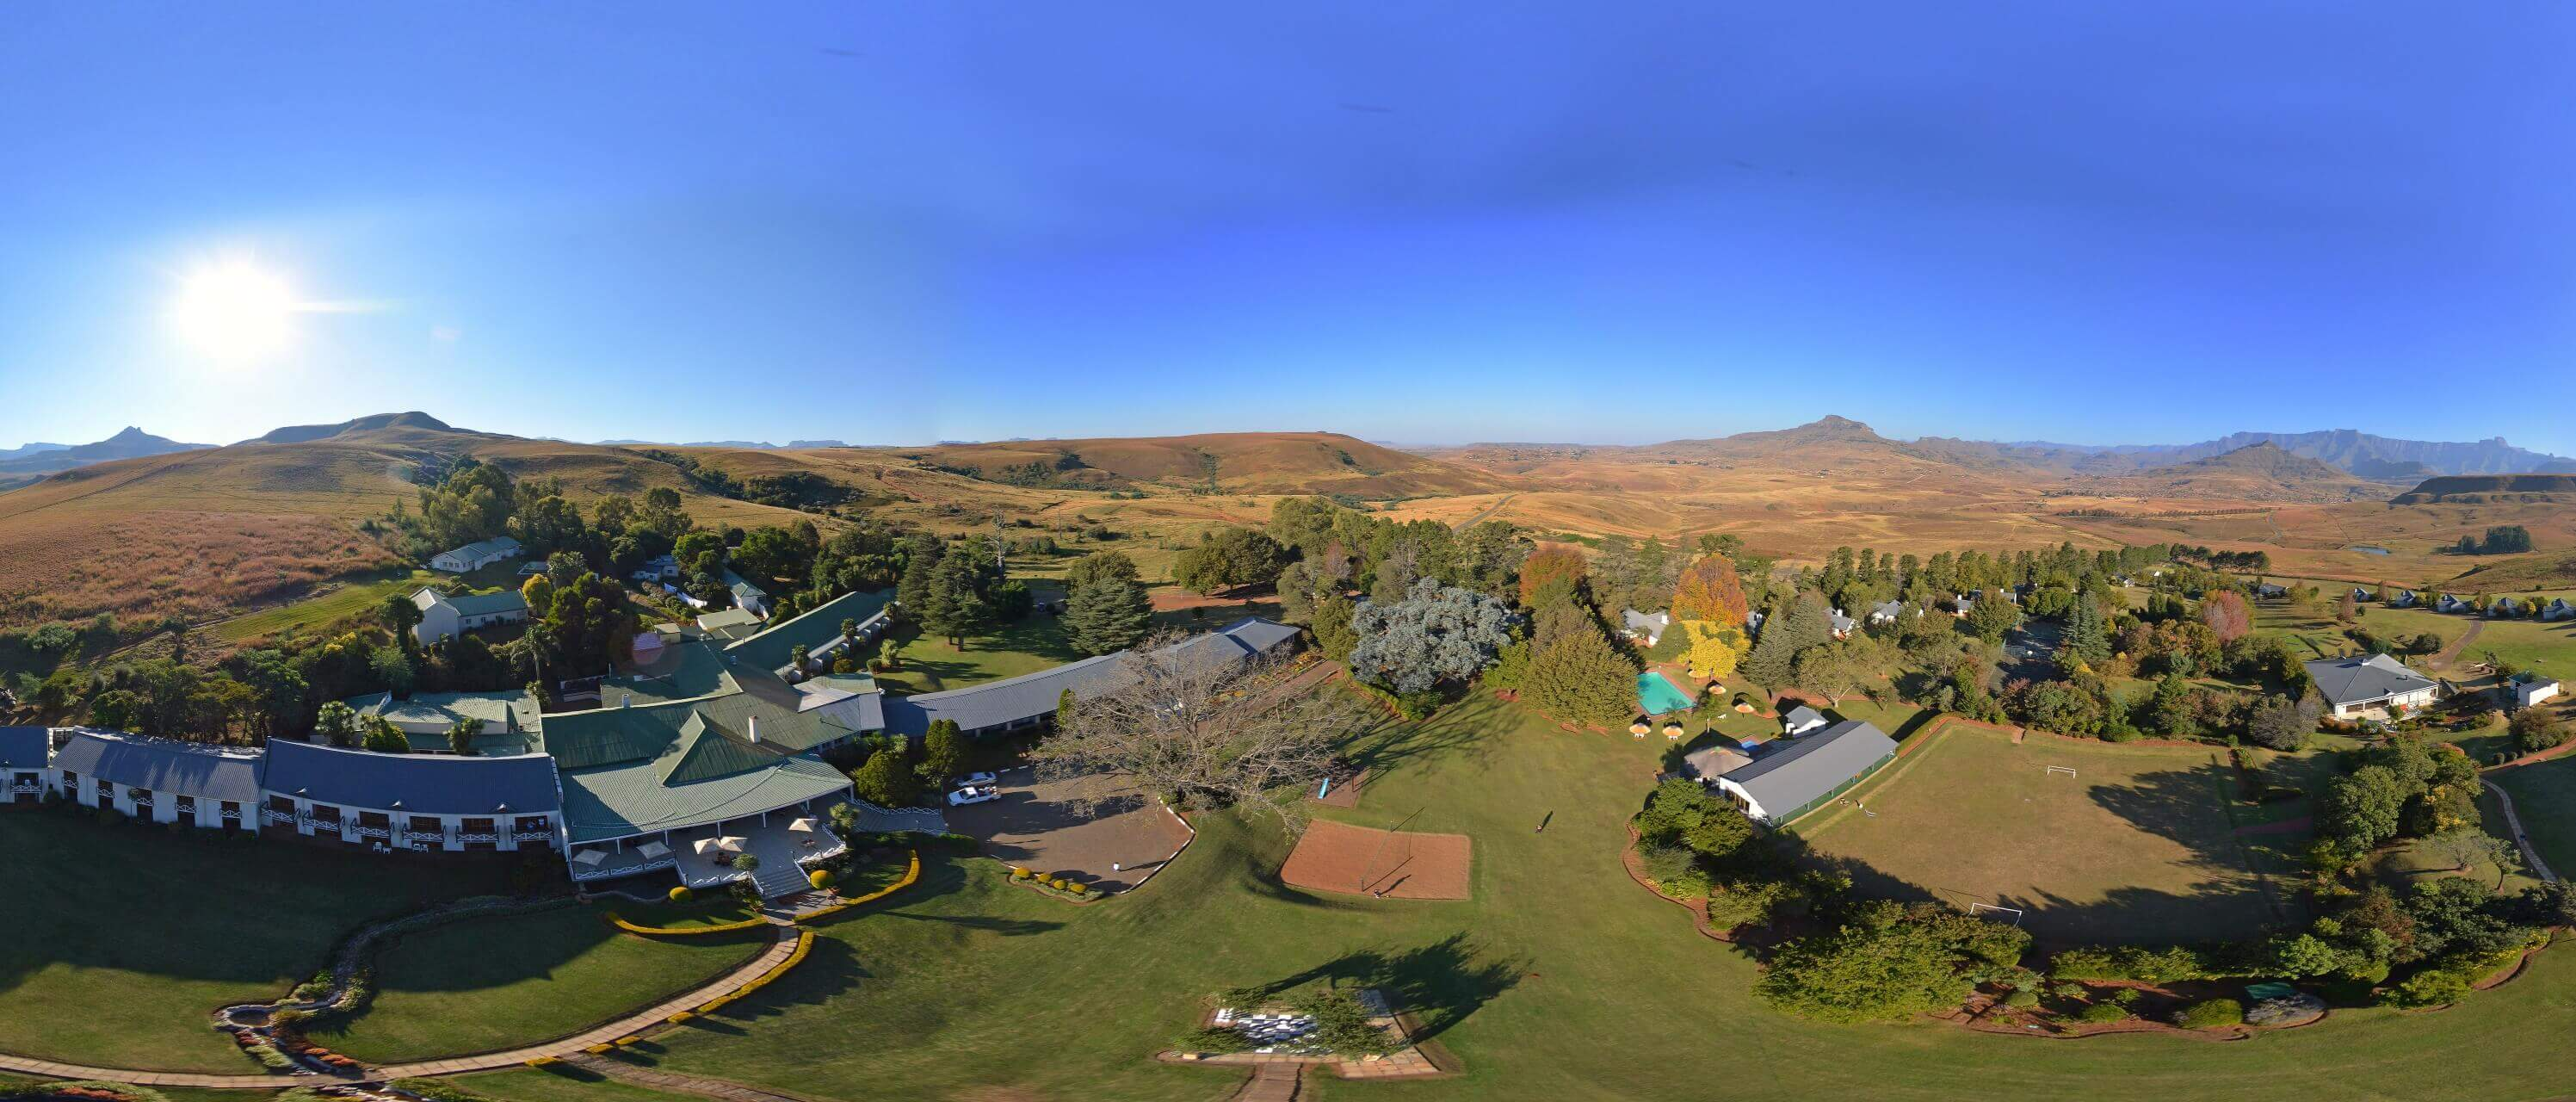 Win a 2 night stay at Mont Aux Sources Hotel & Resort